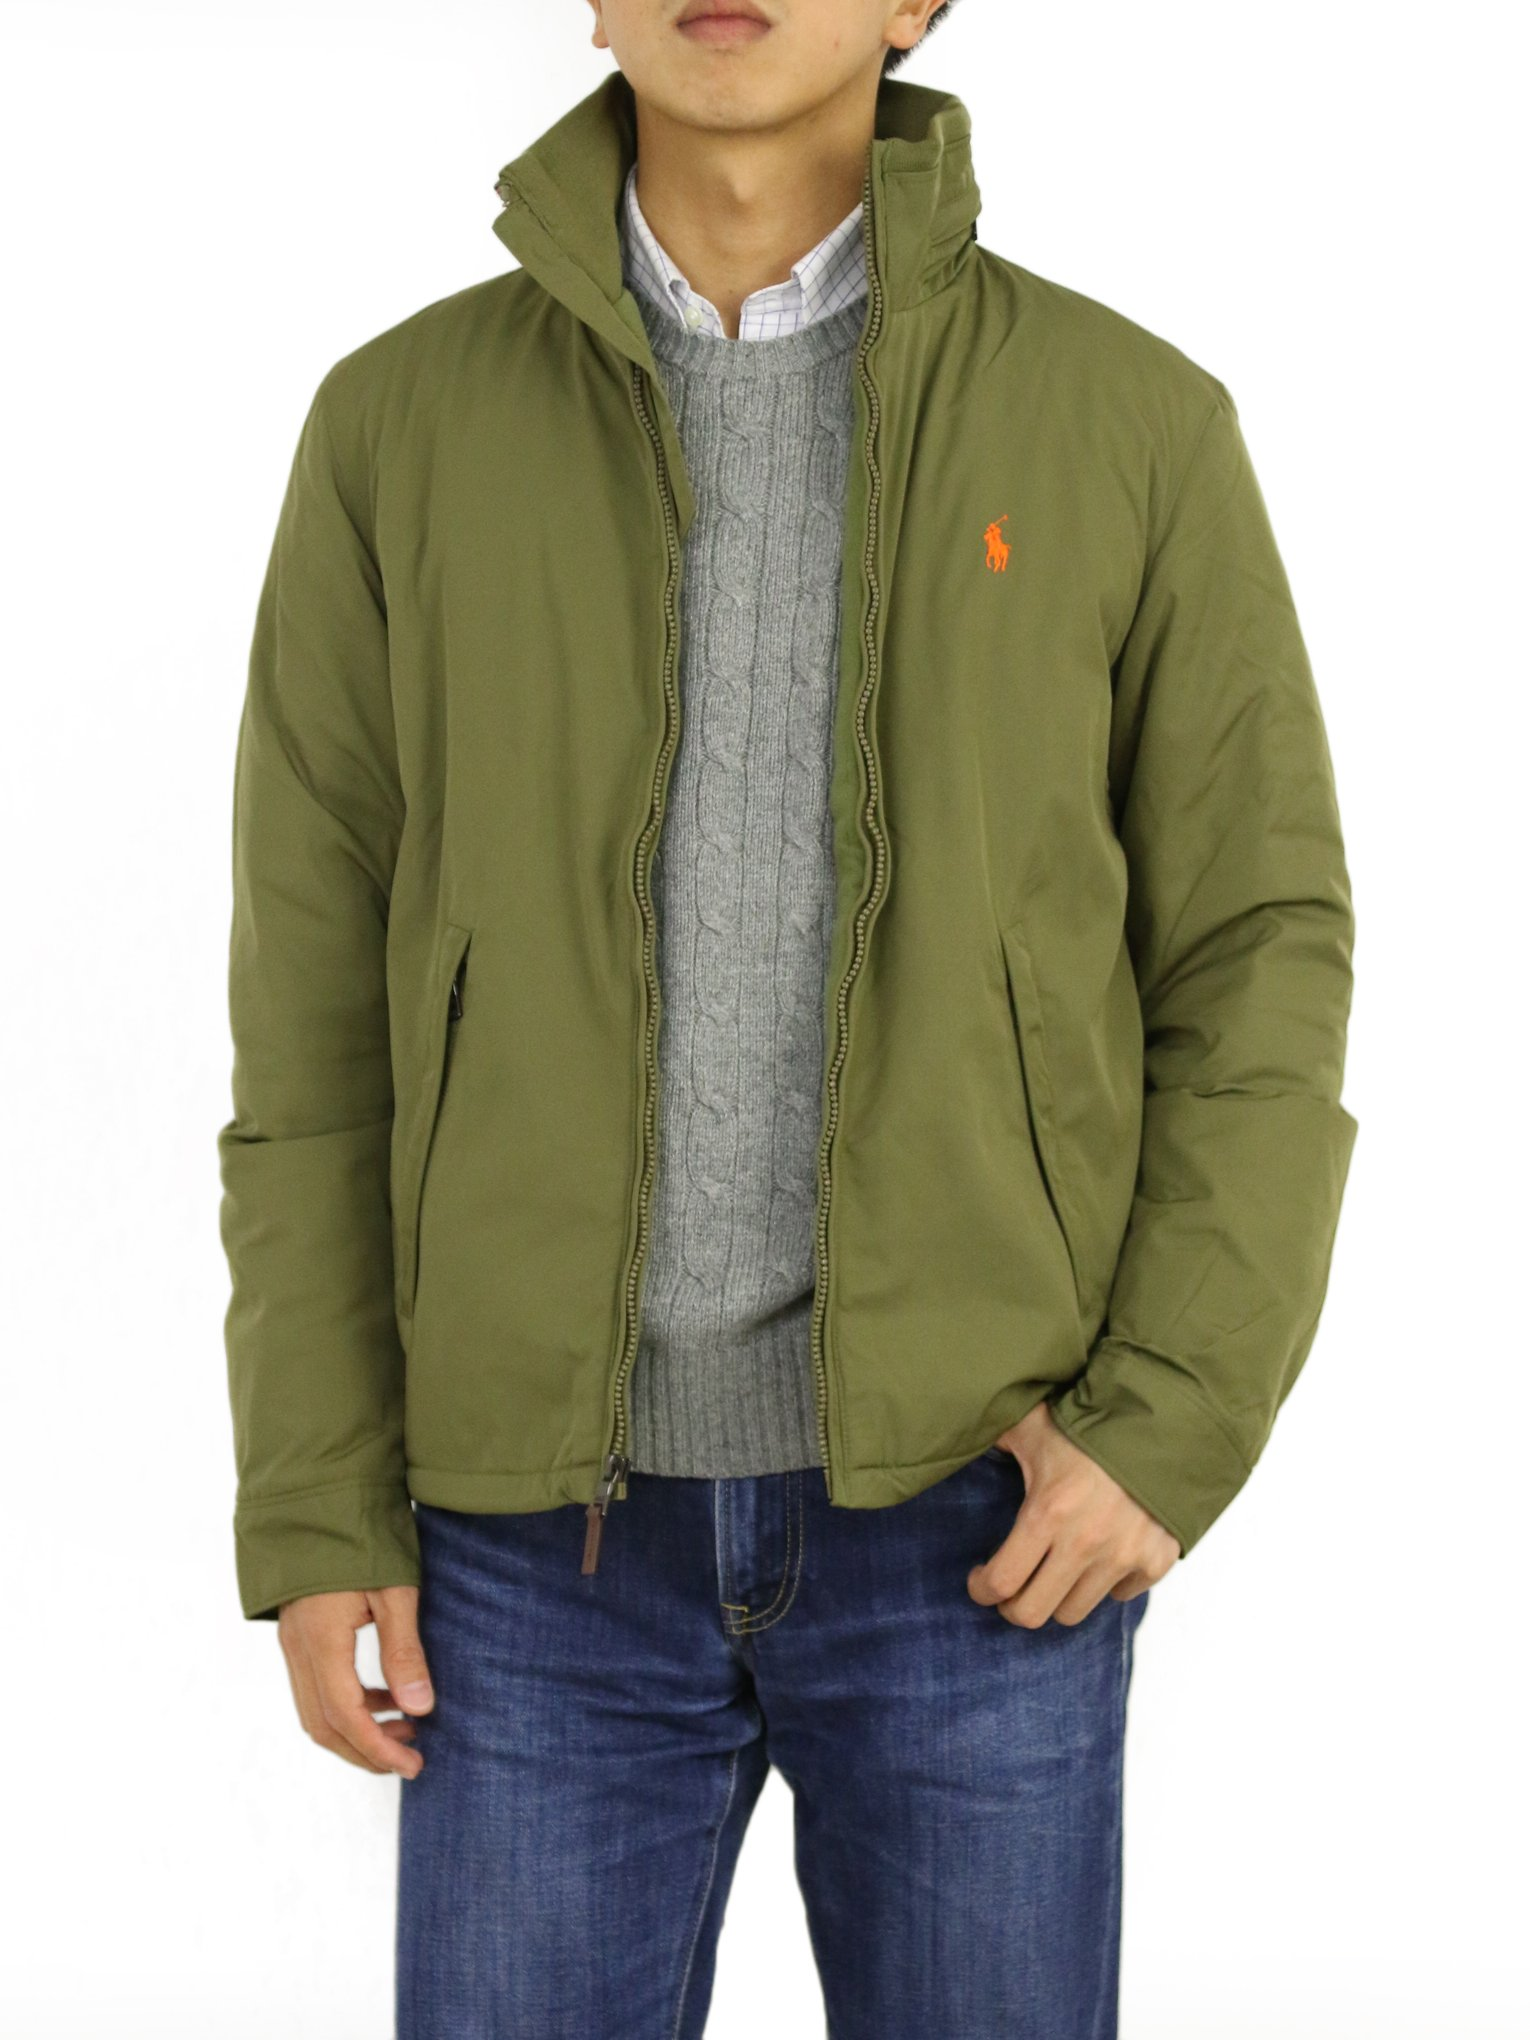 Ralph Lauren Jacket Perry Olivenorg Polo L iXkZPu